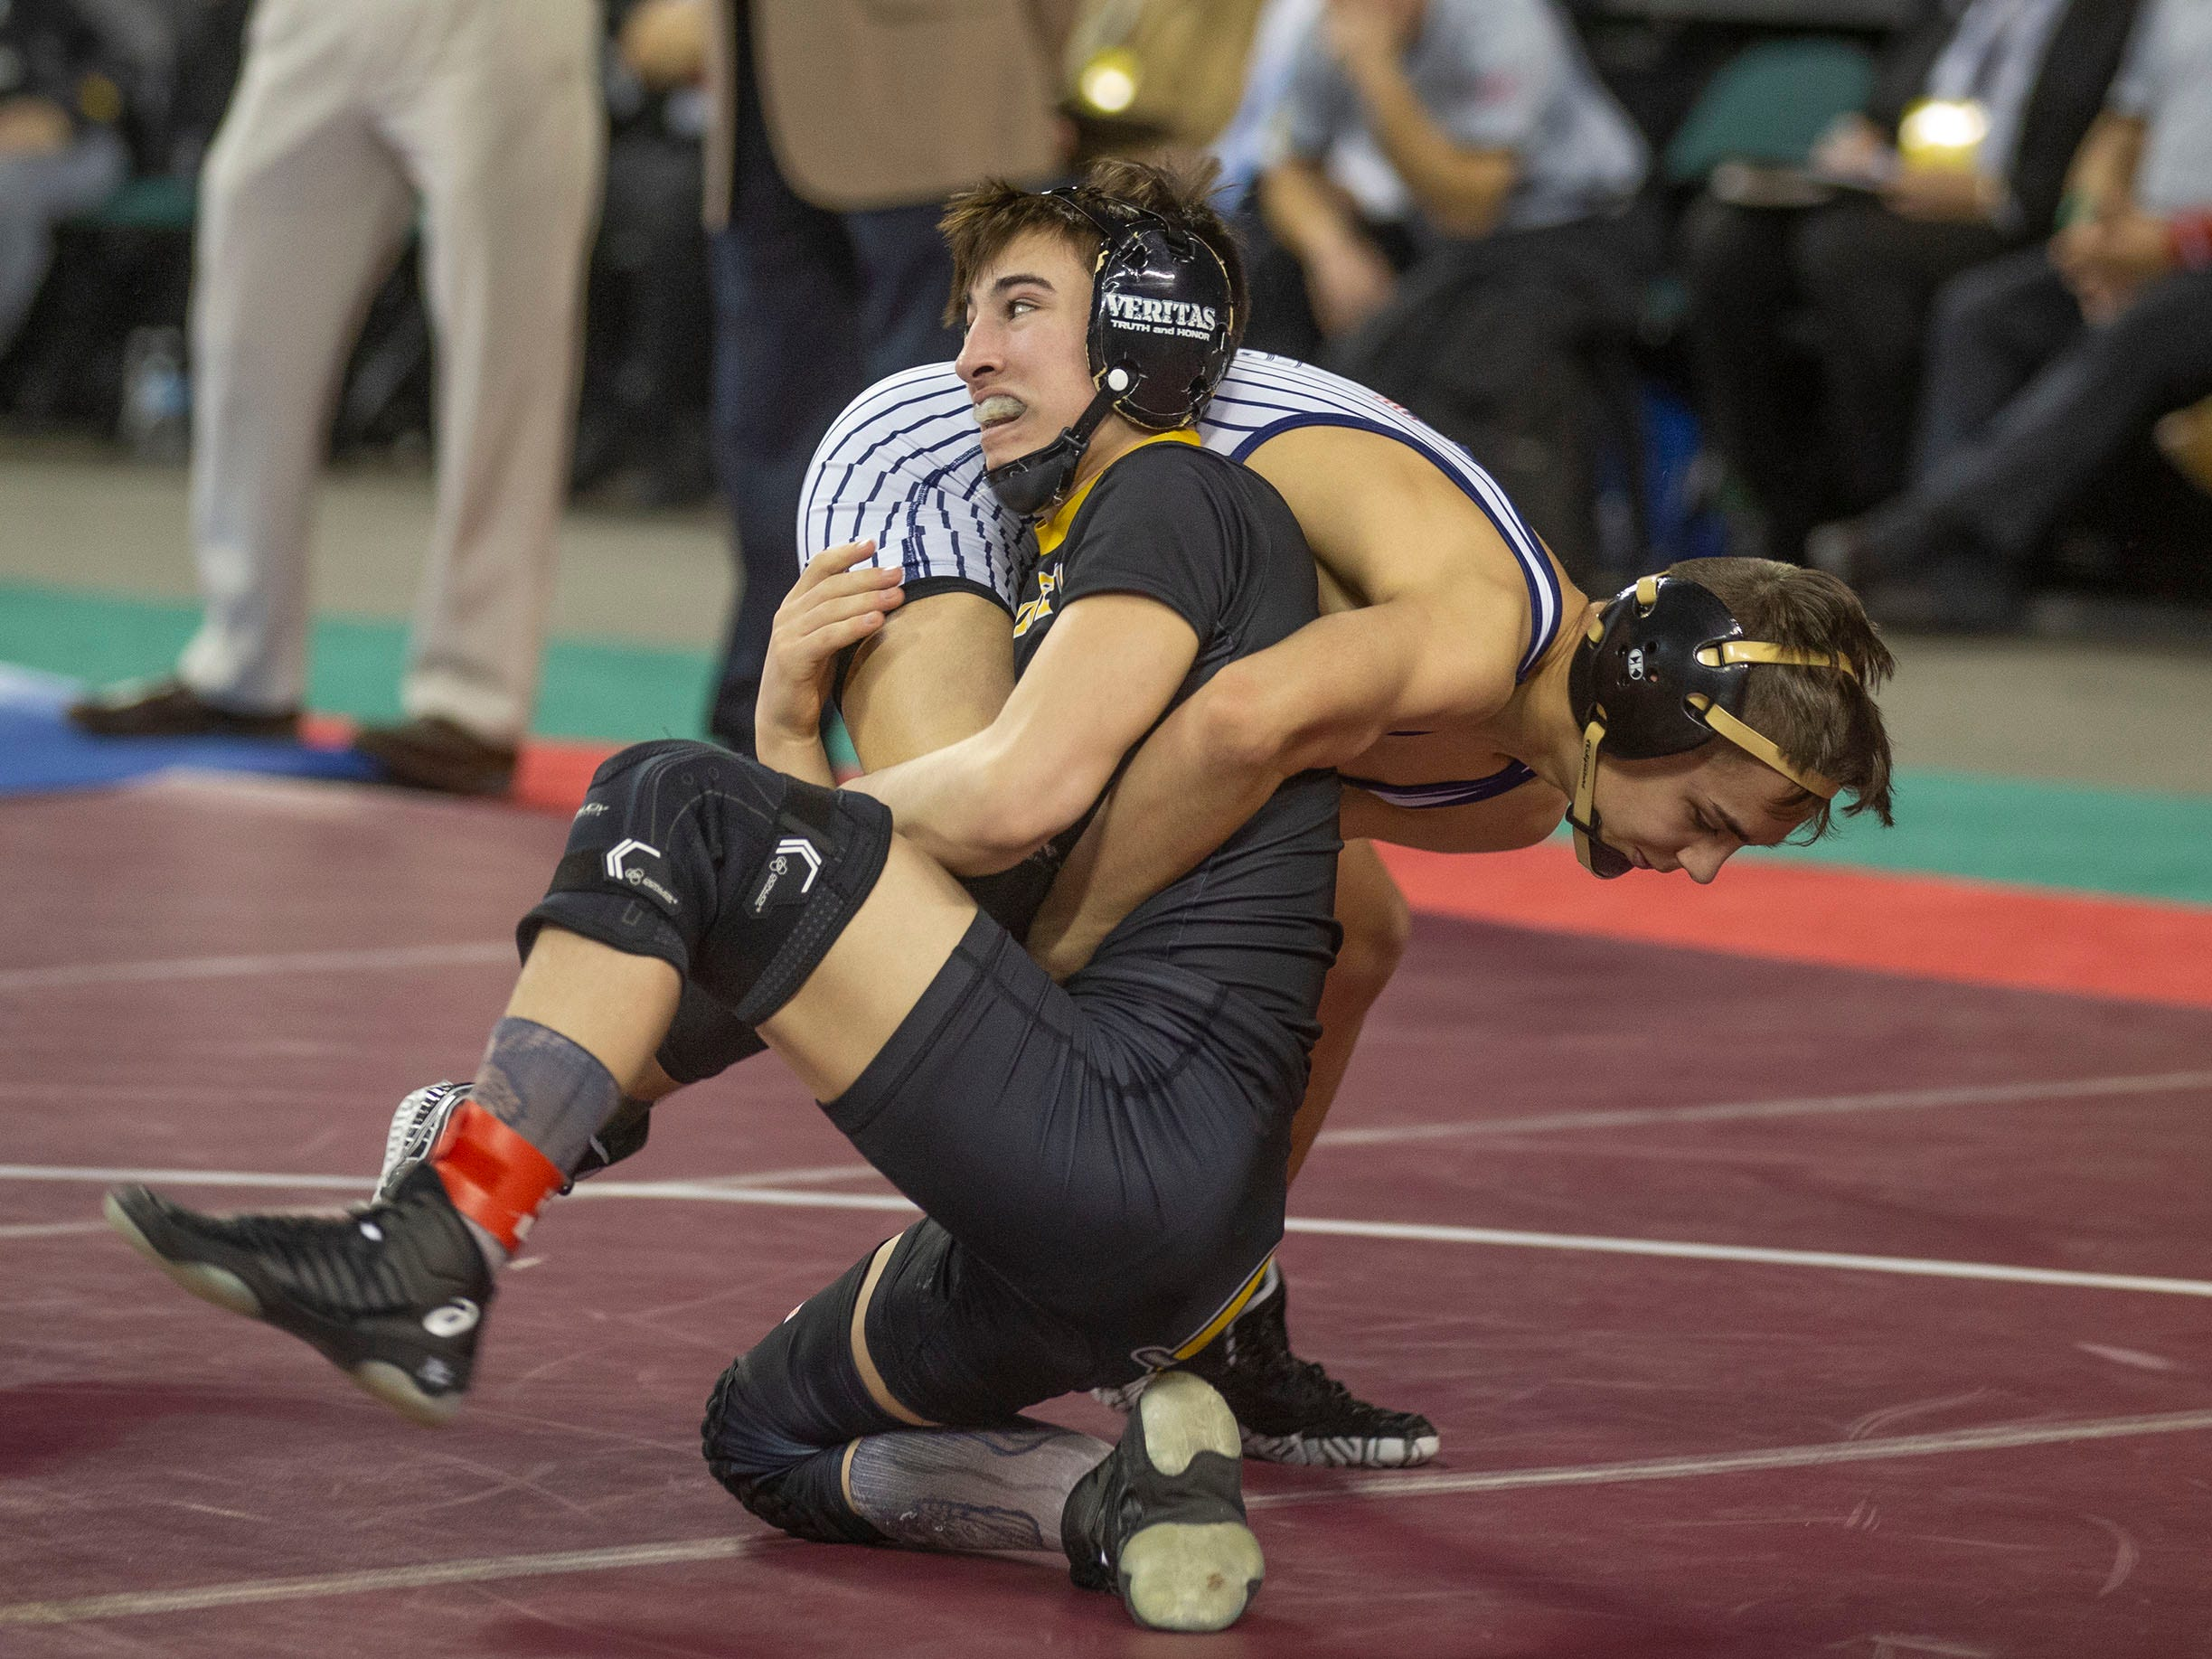 St. John Vianney's Dean Peterson vs. St. Augustine Prep's  D'Amani Almodovar in their 113. lbs. bout.  NJSIAA State Wrestling opening rounds in Atlantic City, Thursday February 28, 2019